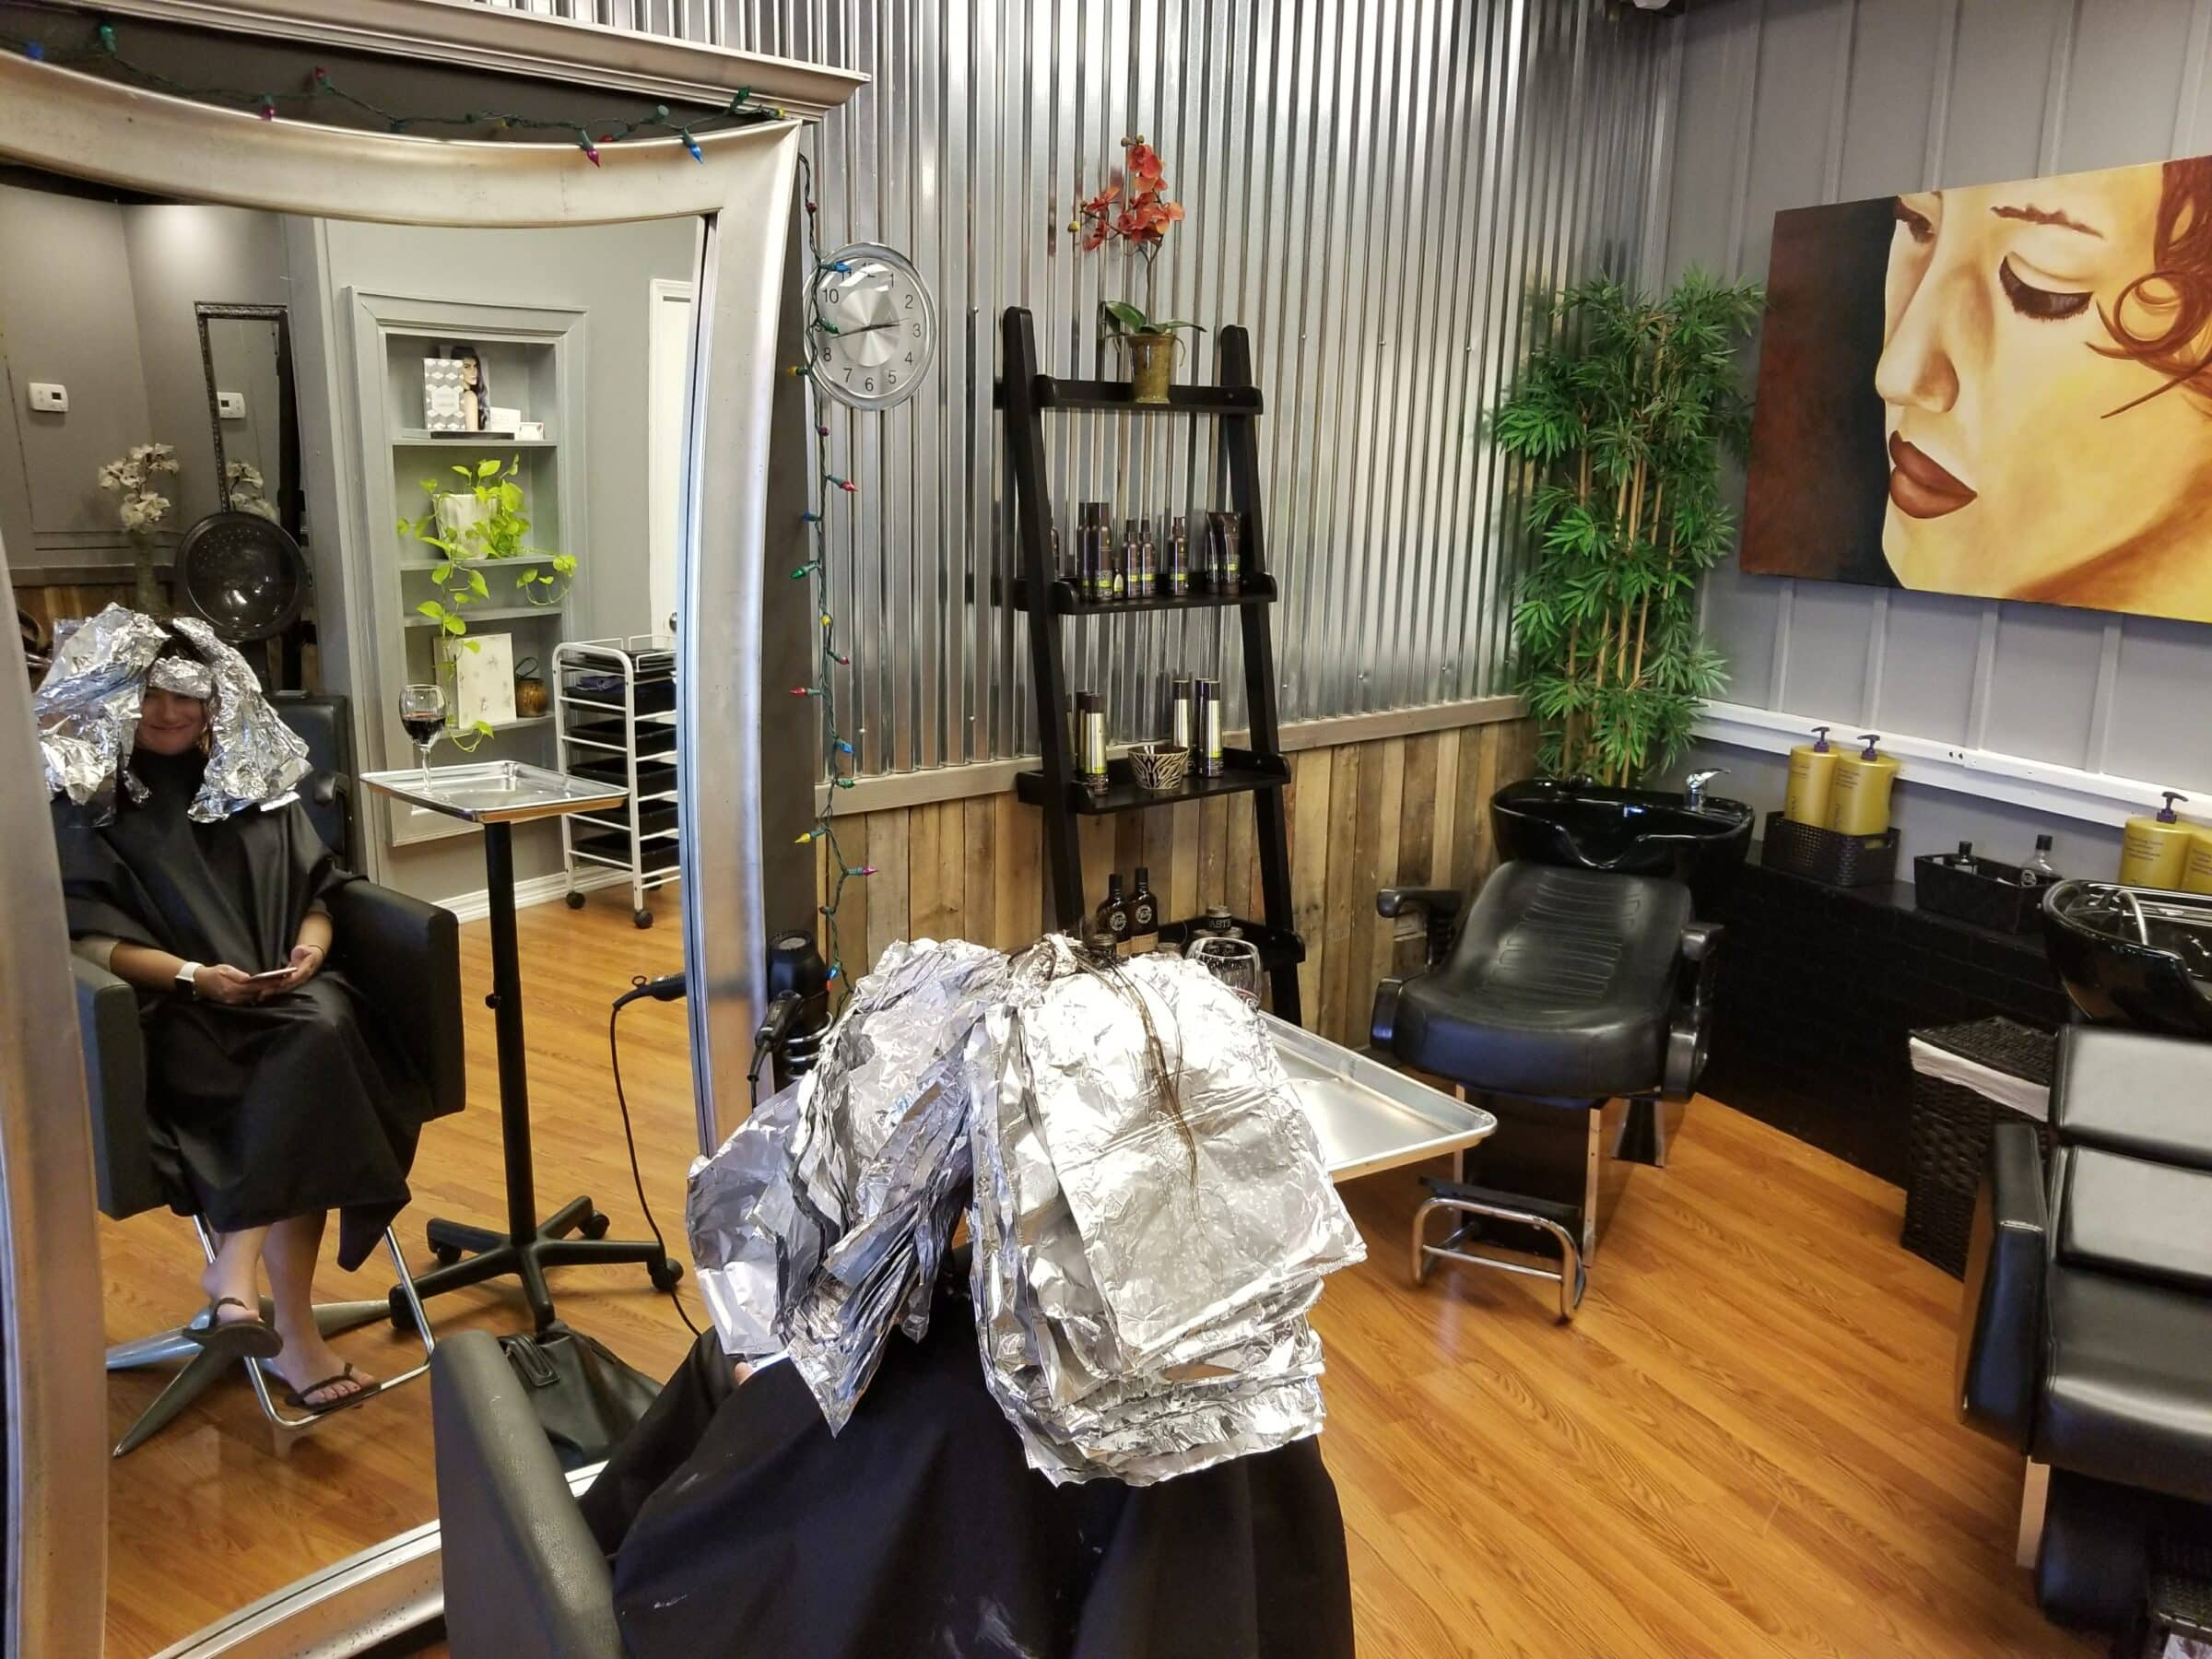 Destin Hair Studio Salon Image 005